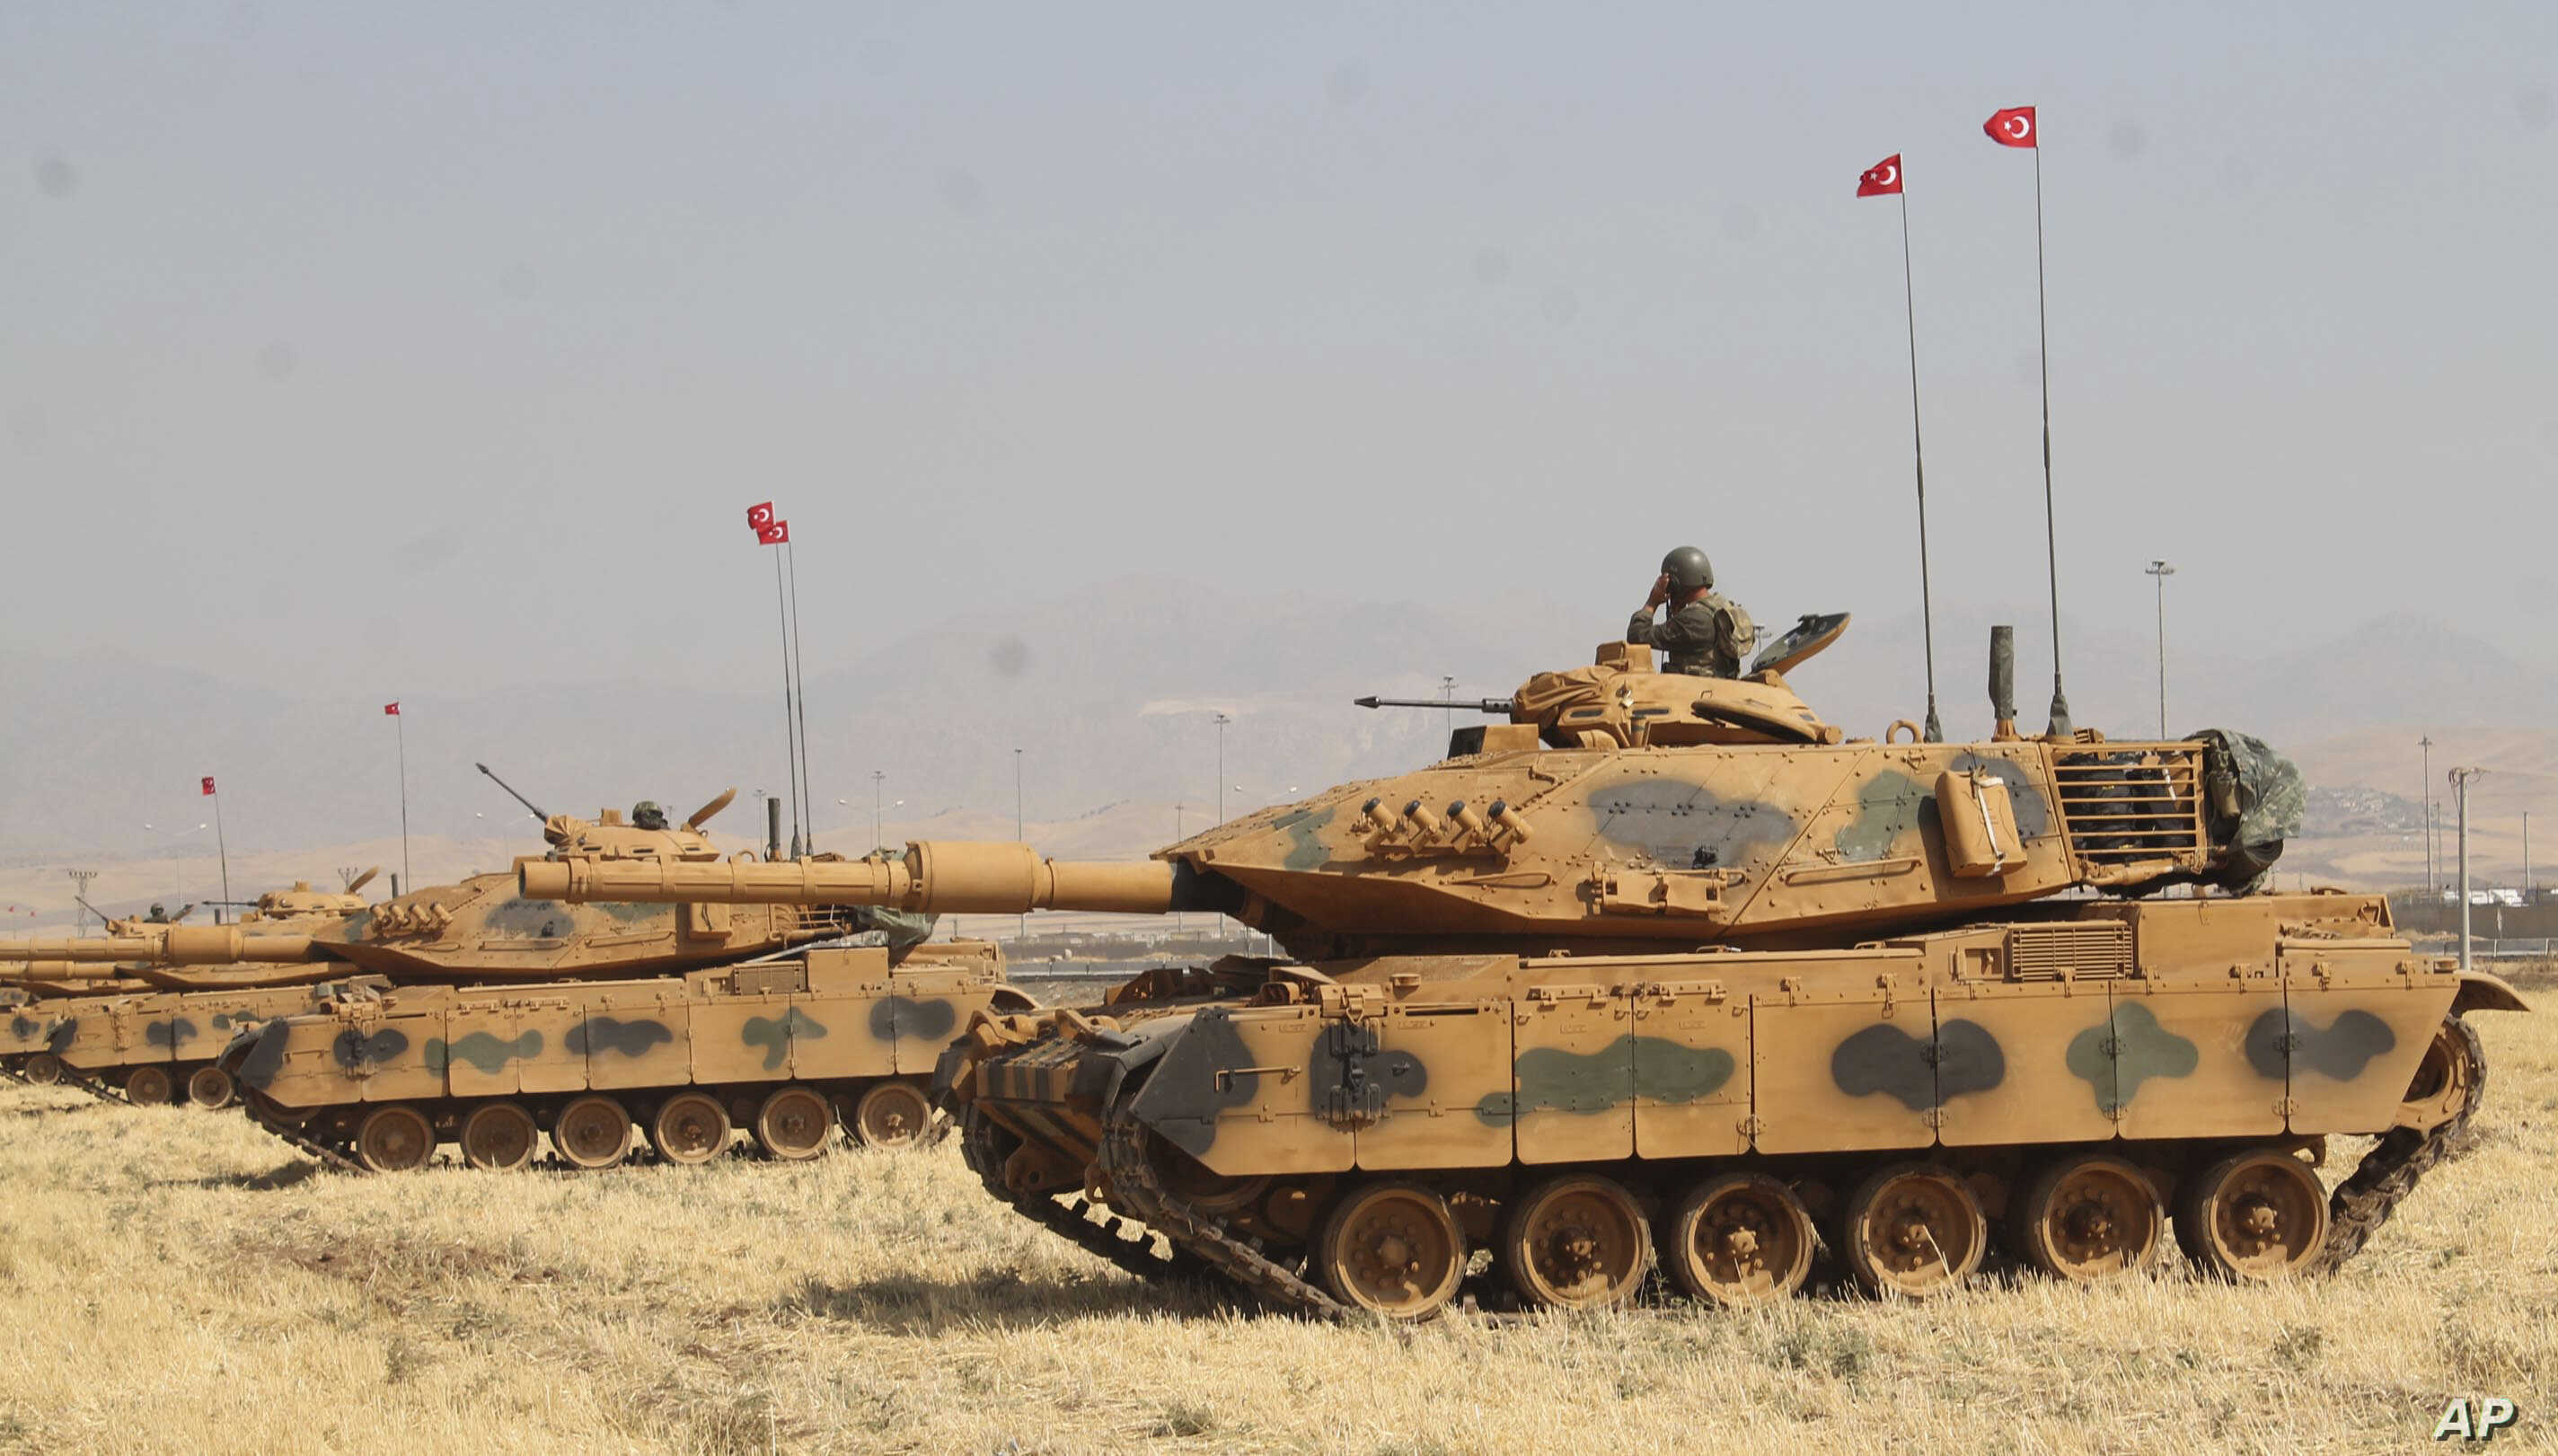 Turkey's Armed Forces officers in tanks take part in a military drill near the town of Silopi, Turkey, close to the Habur border gate between Turkey and the autonomous Kurdish region in Iraq, Sept. 18, 2017.